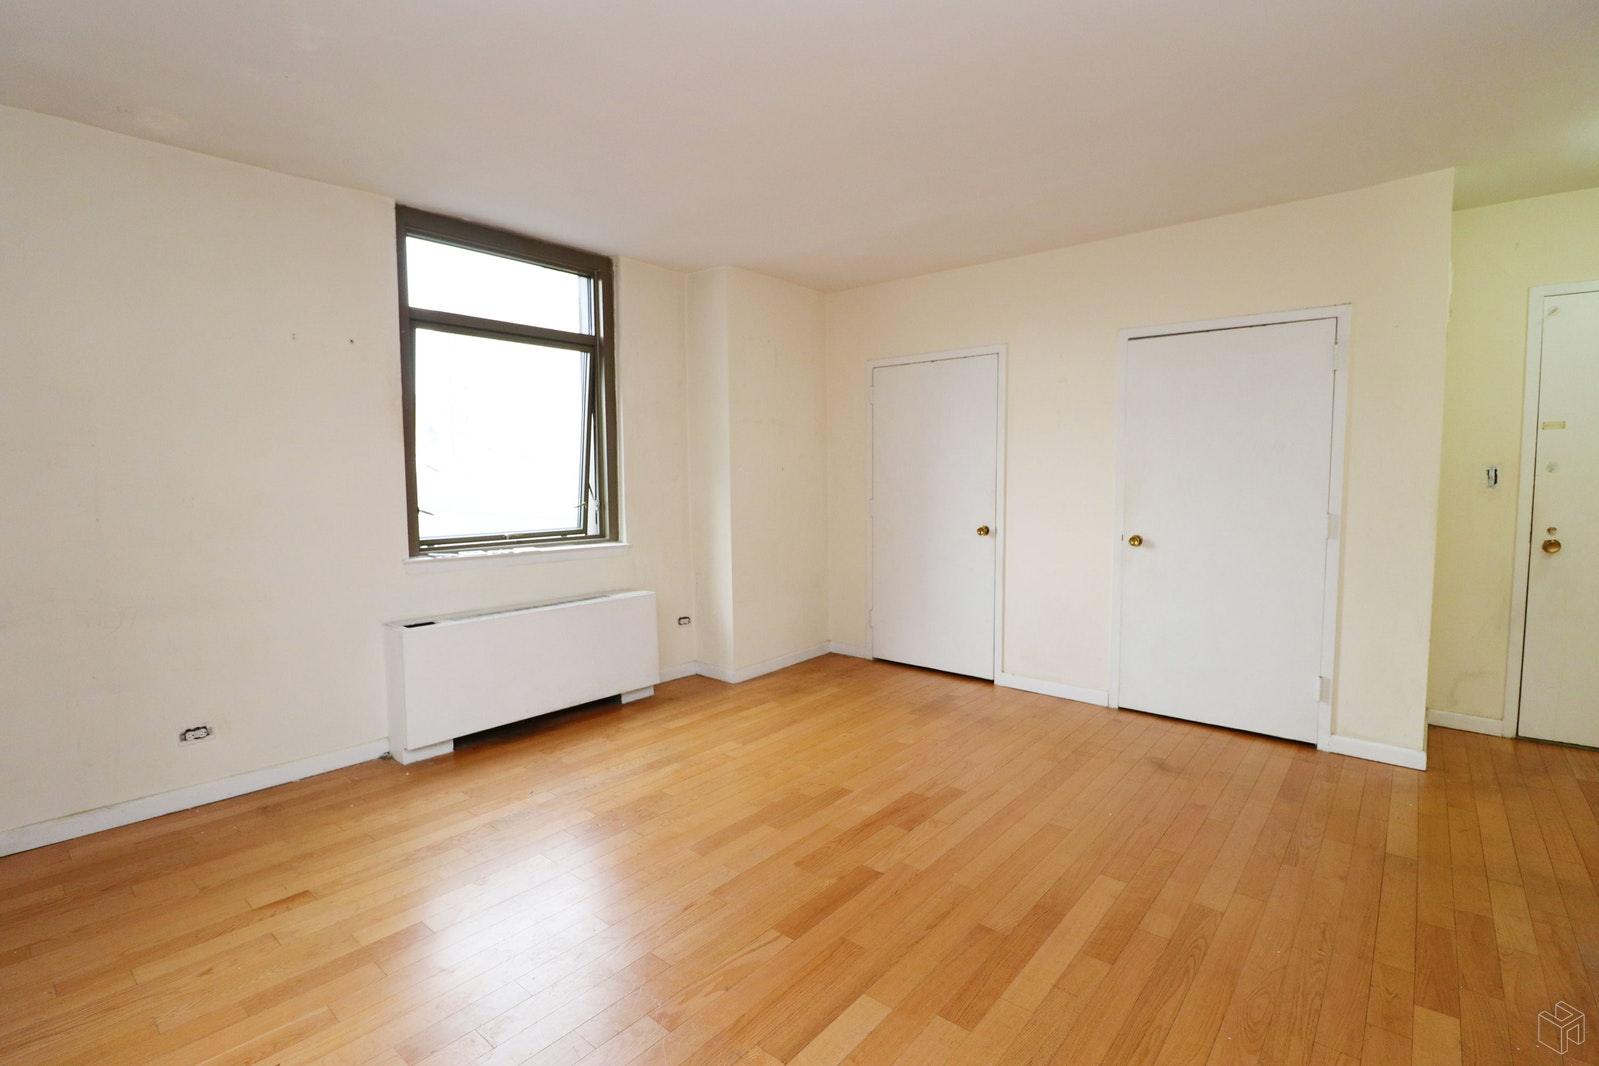 4 Park Avenue, Midtown East, NYC, 10016, Price Not Disclosed, Rented Property, Halstead Real Estate, Photo 2